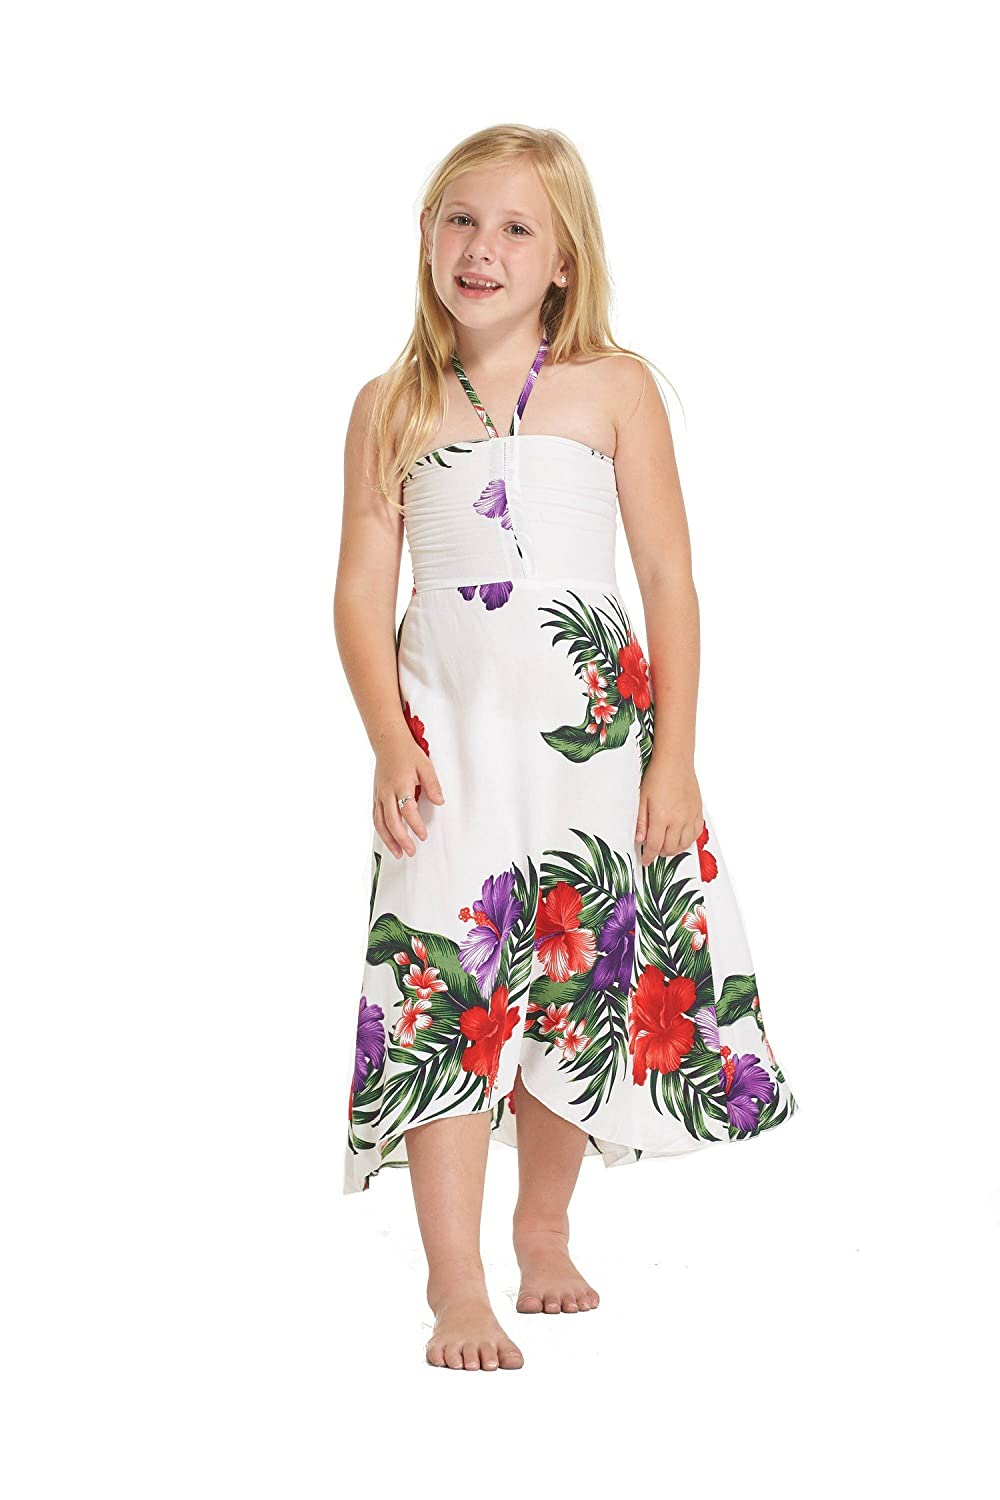 Girl Elastic Ruffle Hawaiian Luau Dress in White Floral Aloha Fashion 027704